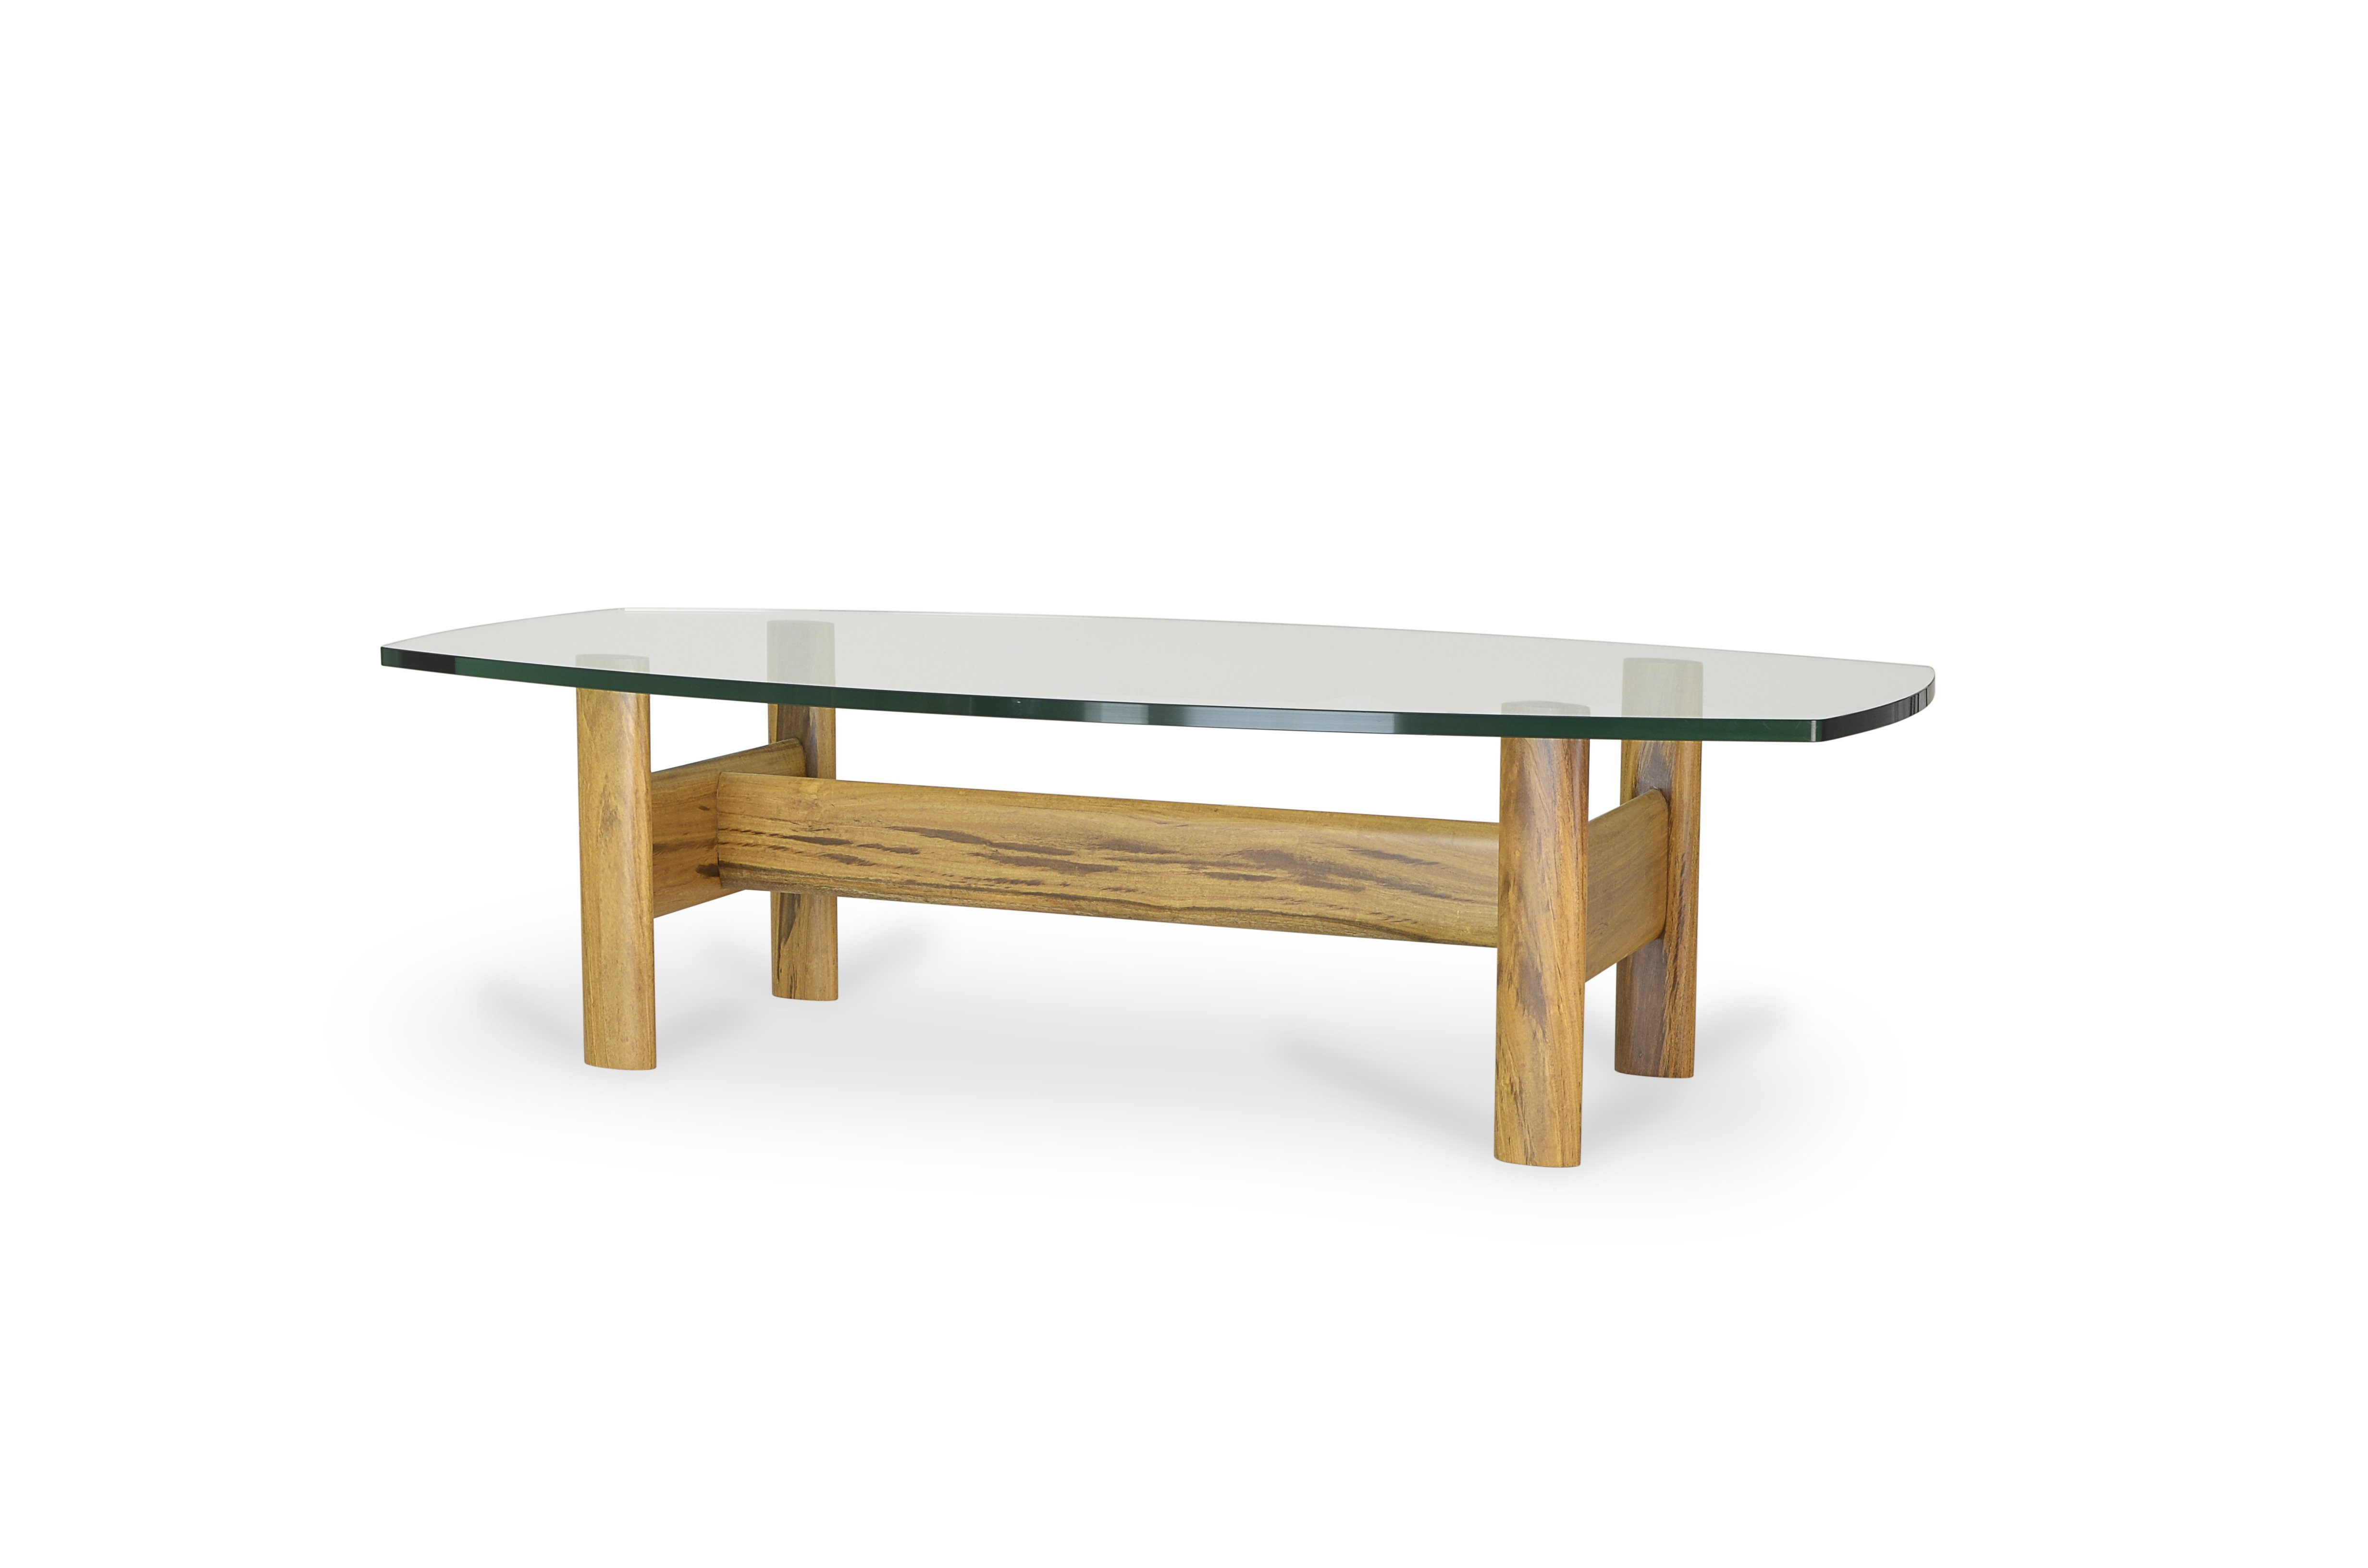 Picture of: Dining Table Accessories And Large Square Coffee Table Uk Tagged Contemporary Coffee Centre Table Uk Kelly Christian Designs